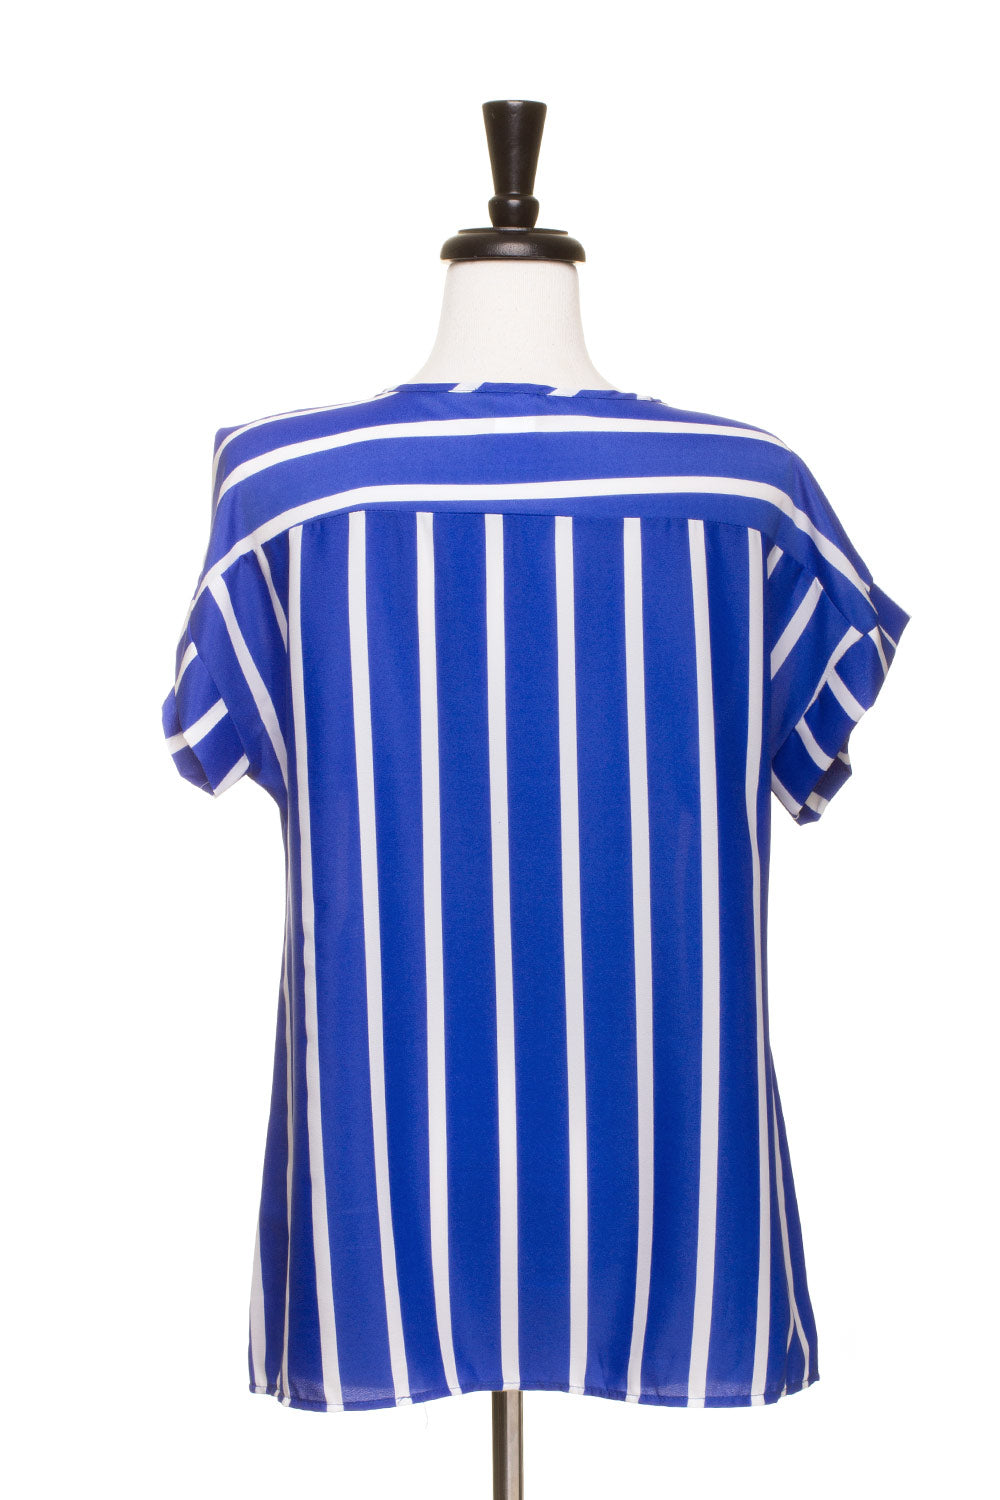 Type 4 Simple Stripes Top